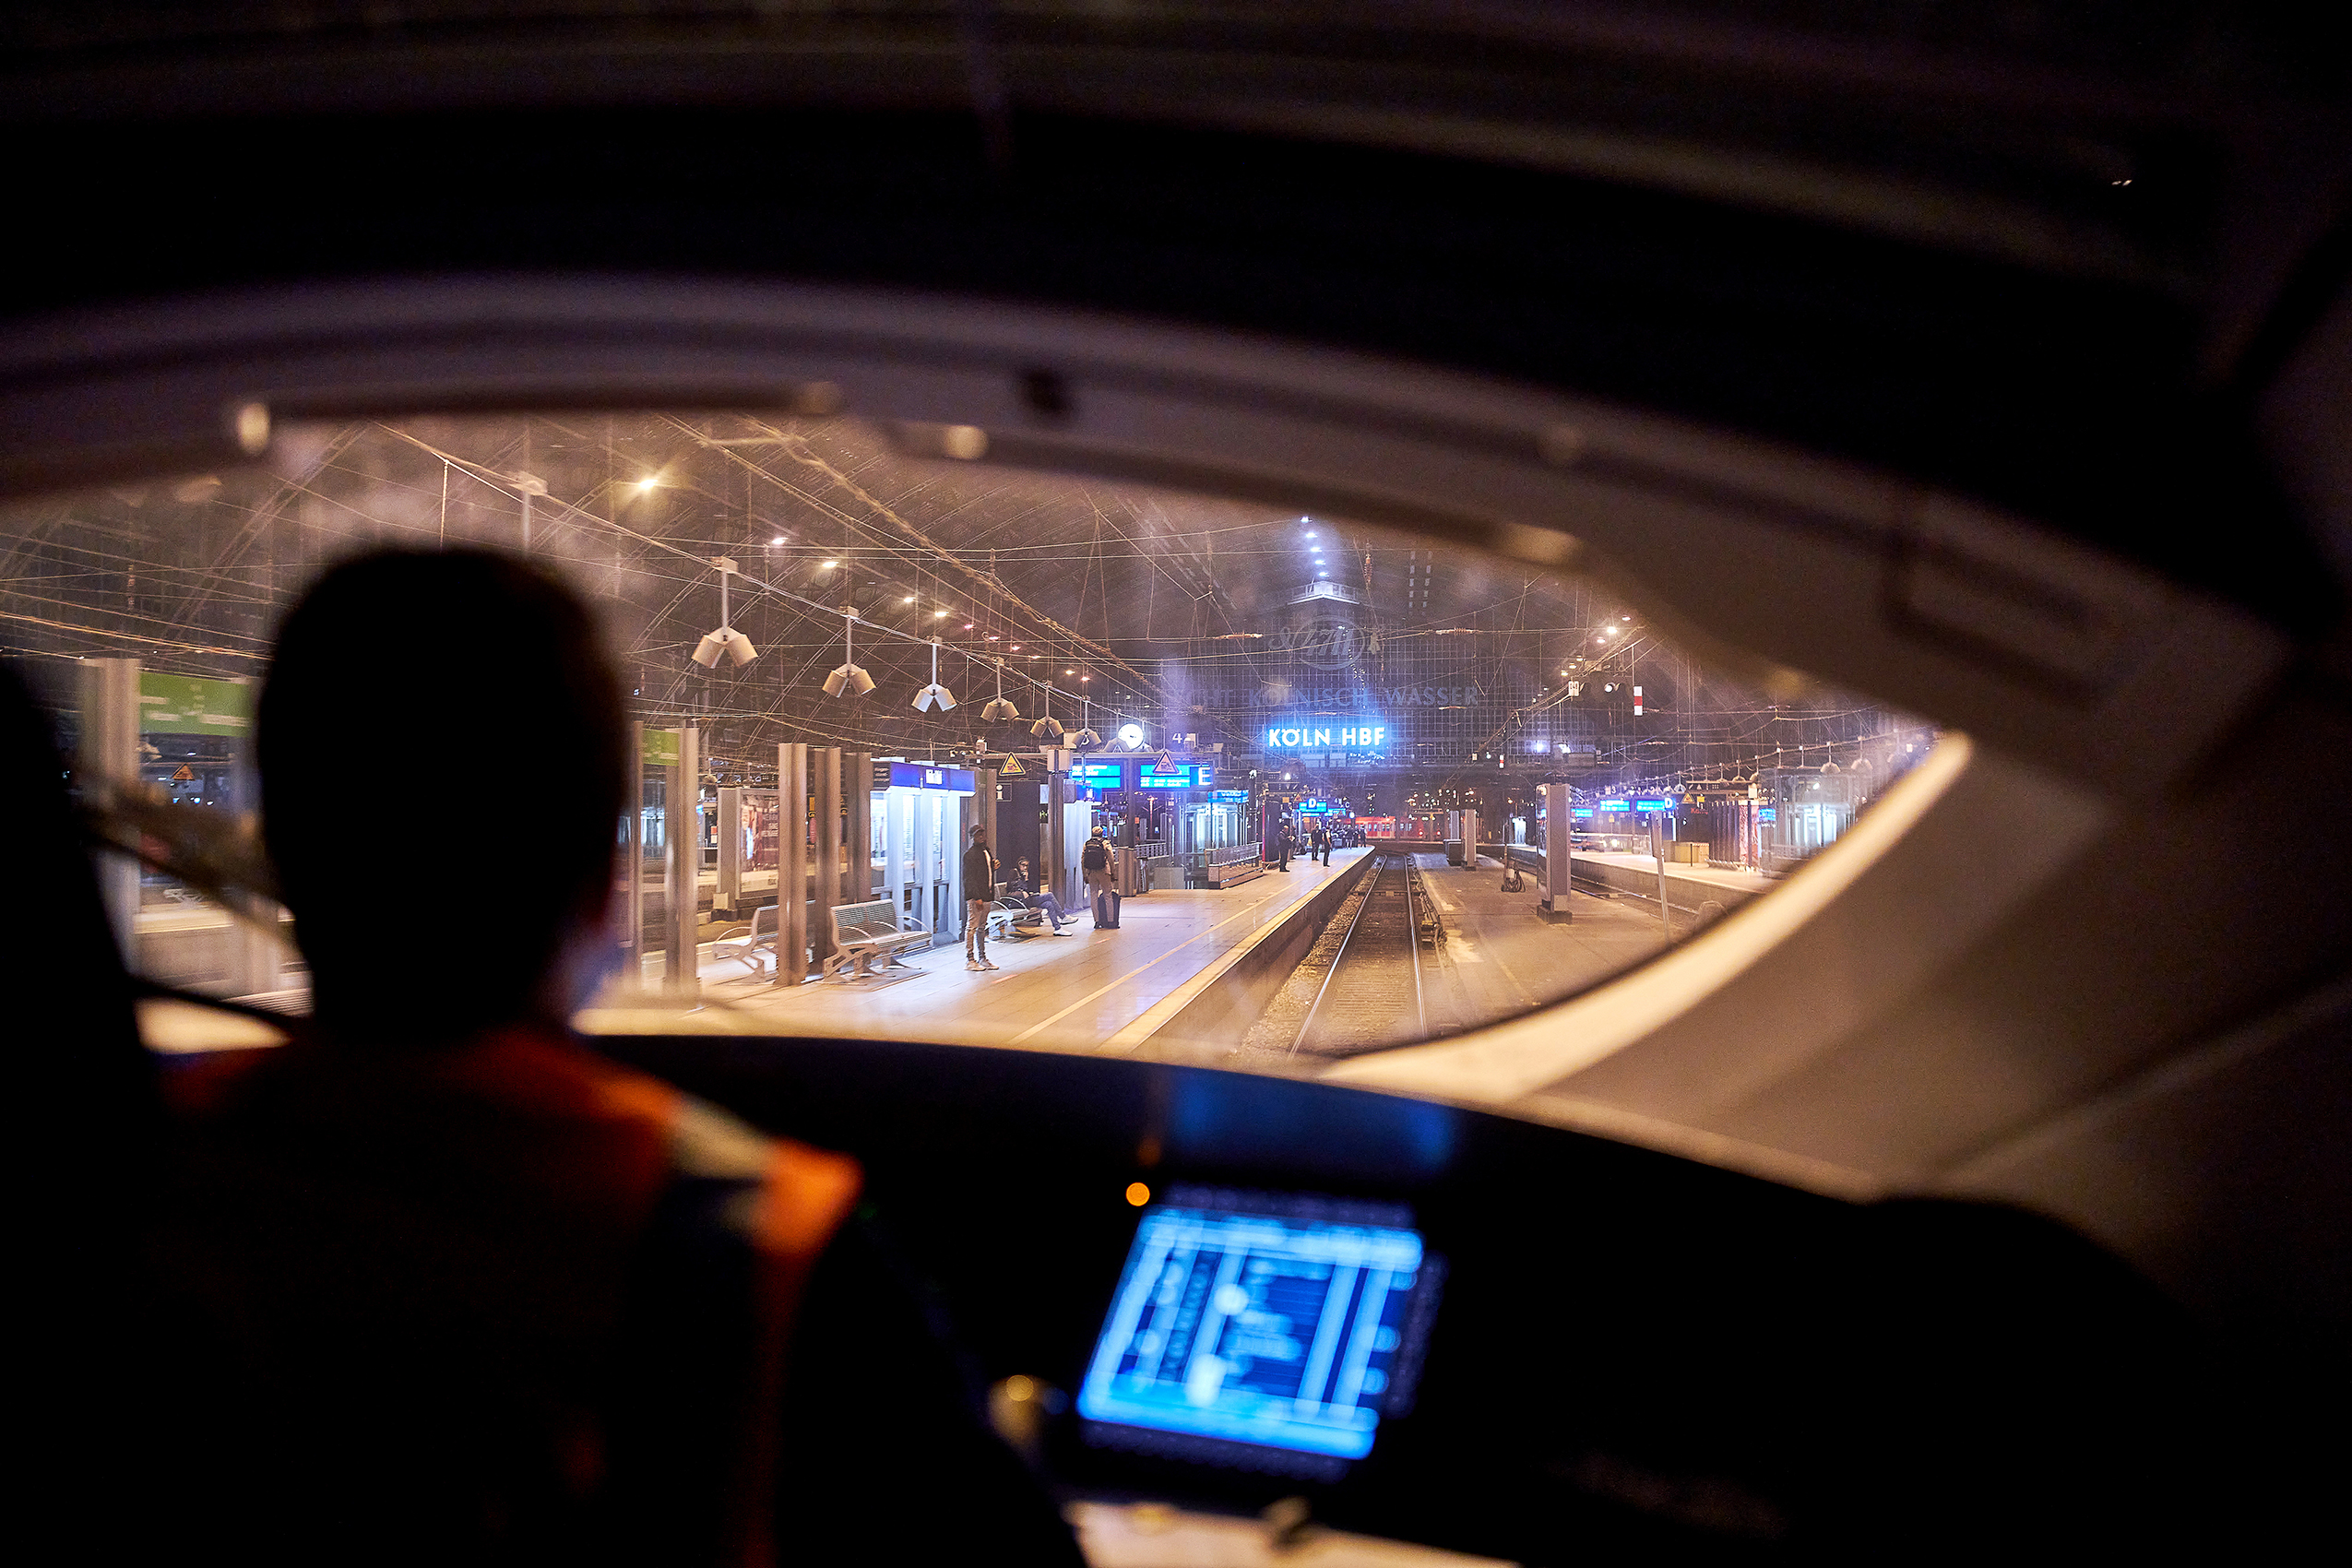 A train runner drives the first ICE to Cologne's main station shortly after 3 am. Passengers are already waiting to board.